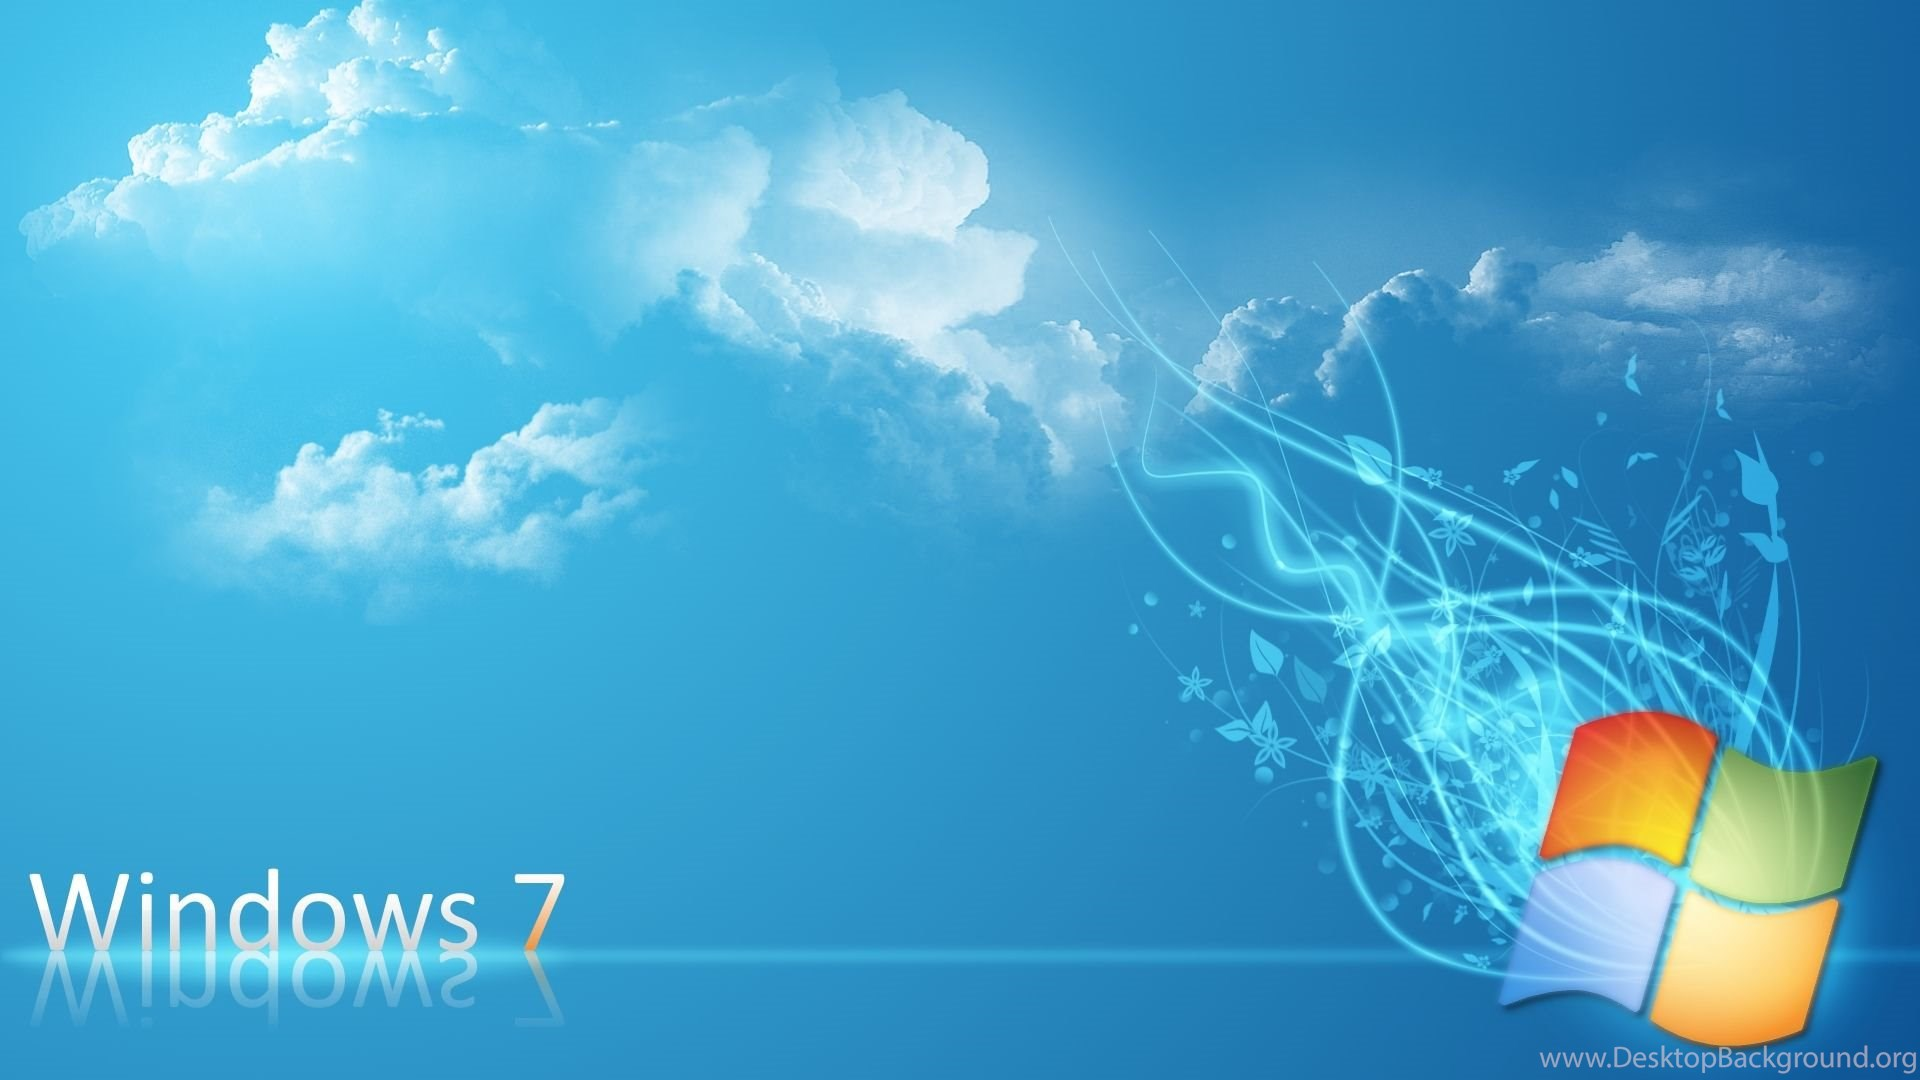 57 Free HD Windows 7 Wallpapers For Download Desktop Background